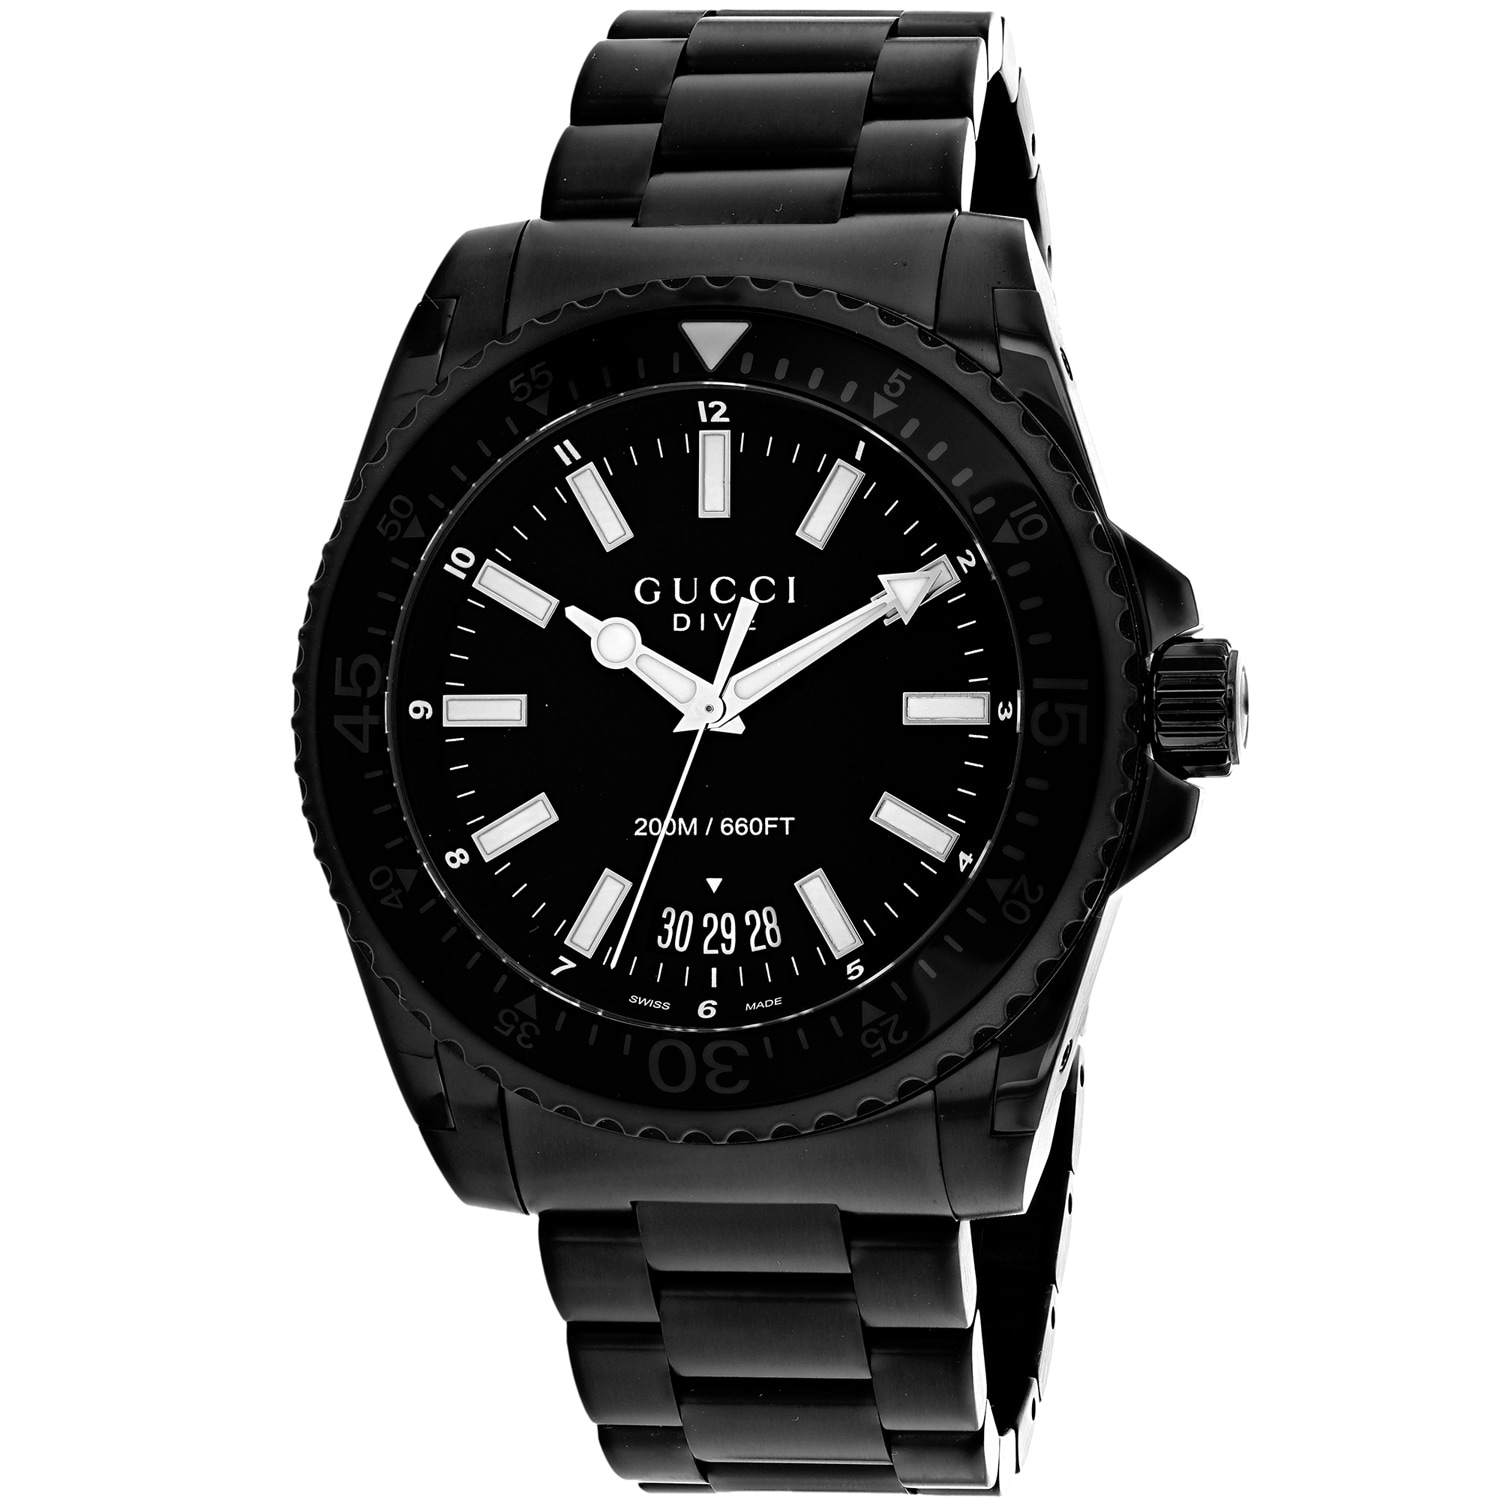 34aafc9cca0 Shop Gucci Men s Dive YA136205 Black Dial Watch - Free Shipping Today -  Overstock - 25437773